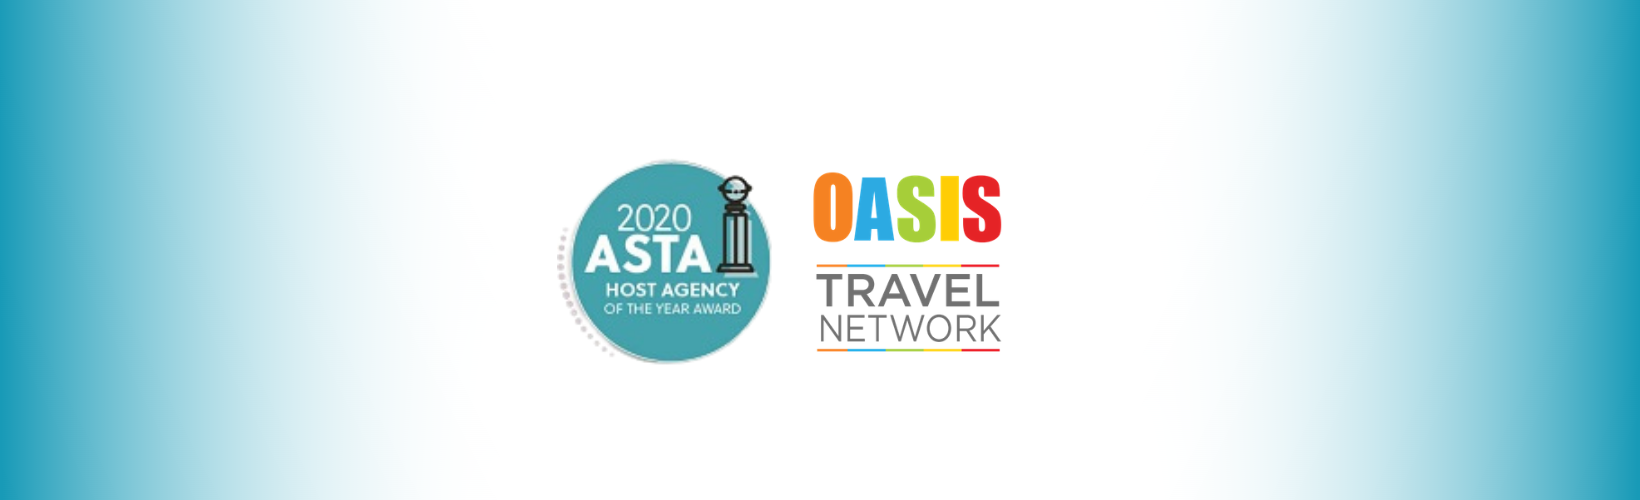 asta host agency of the year